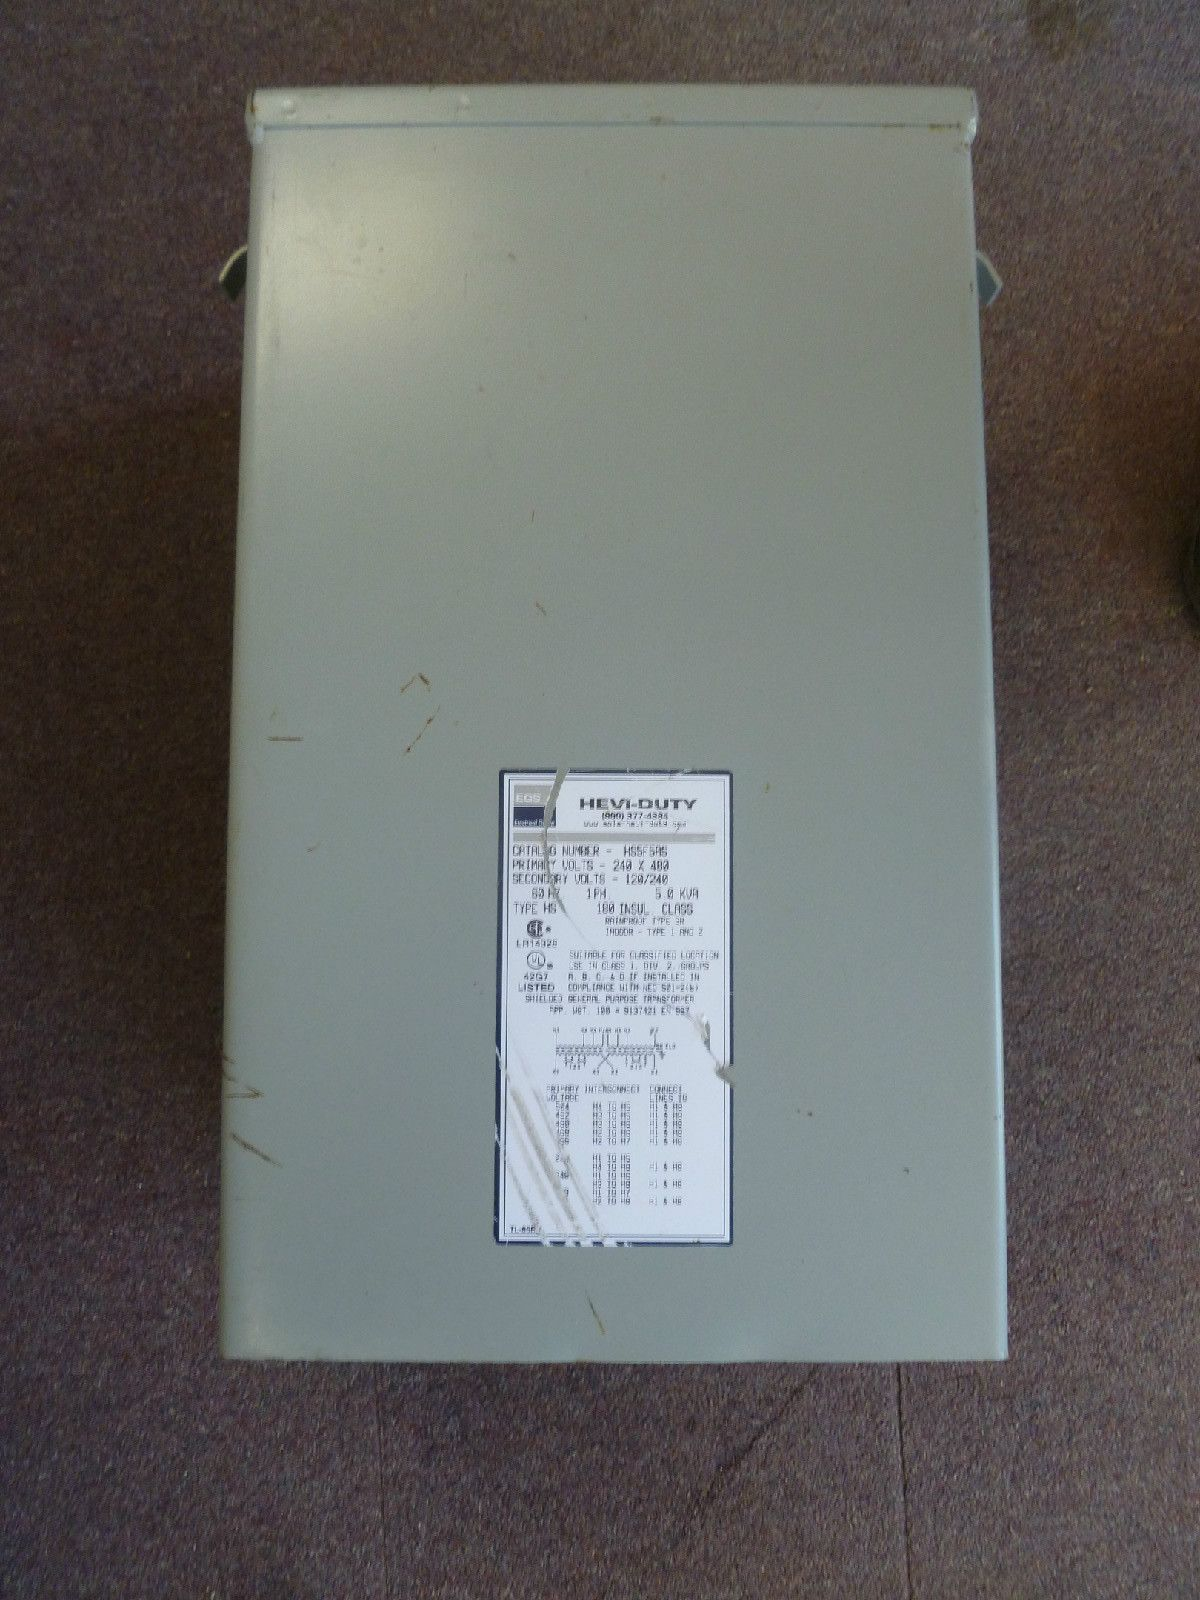 You are buying one Sola HeviDuty Transformer model number